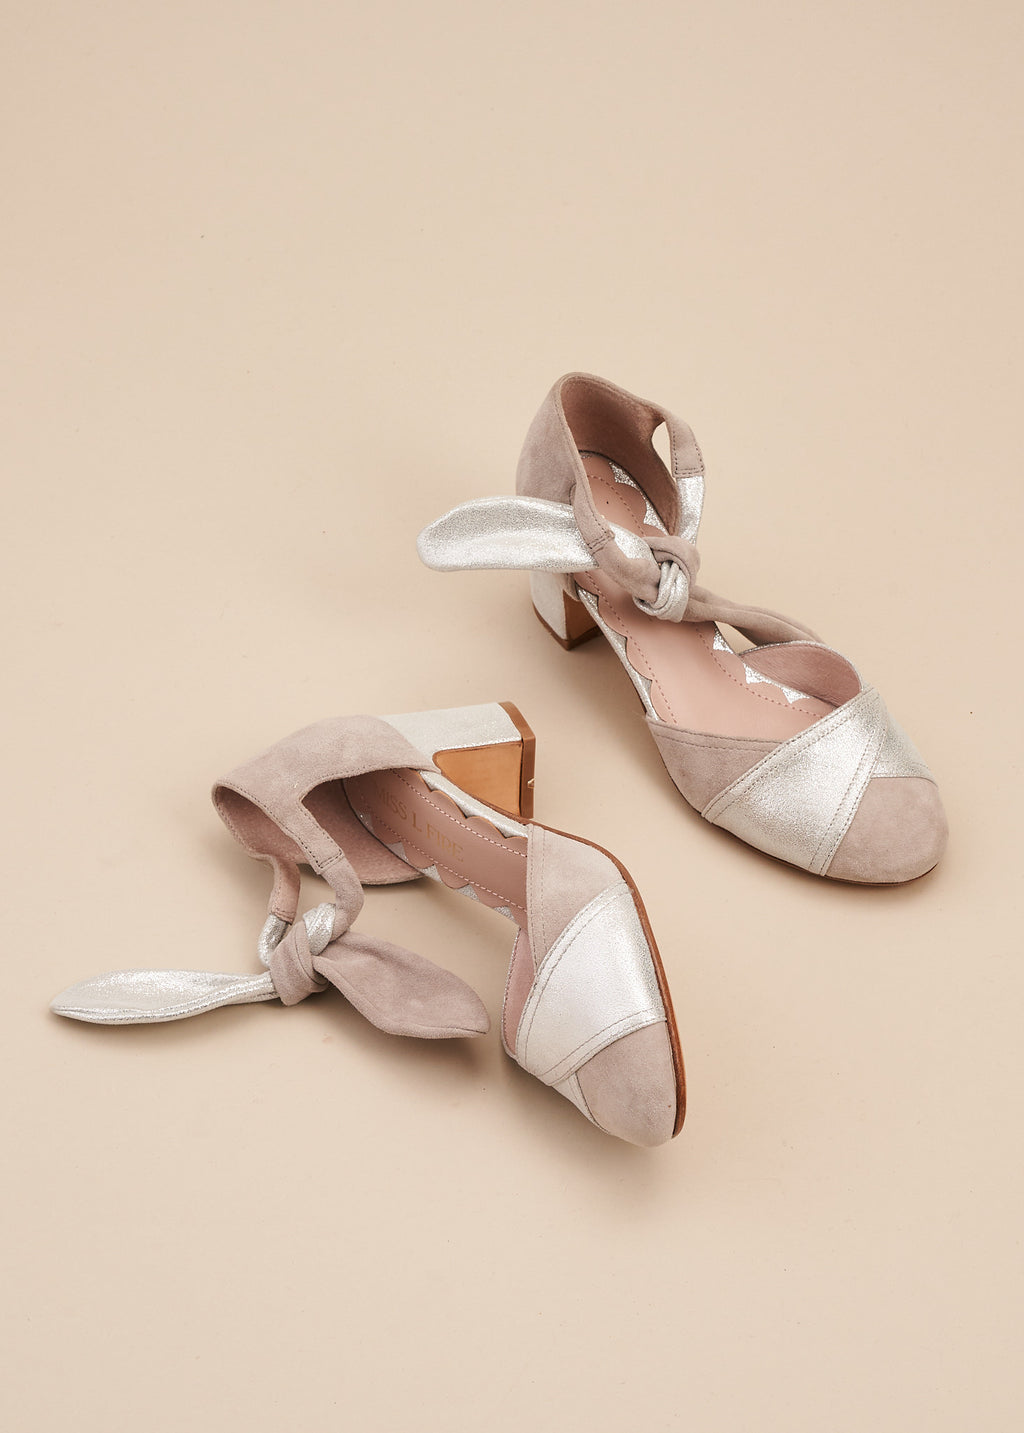 Clarice in soft silver and grey suede is an Art Deco inspired two part shoe with soft suede ankle tie detail and 6cm block heel. Perfect for all occasions, or dressing up at home! By designer Miss L Fire.